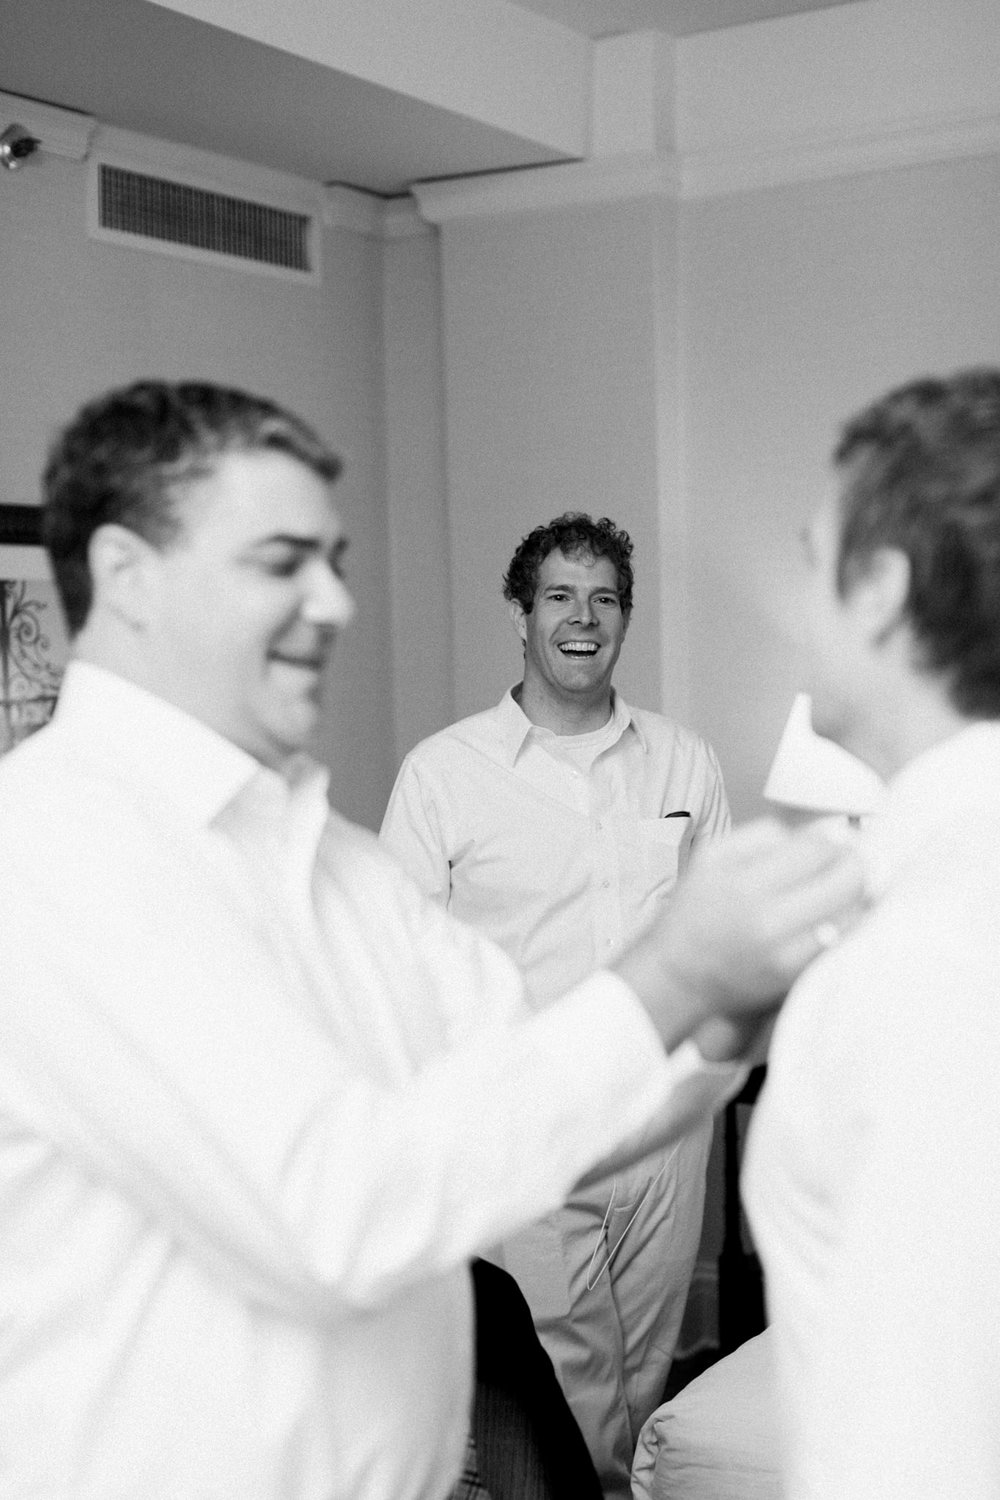 Groomsman laughing during getting ready in louisville, ky